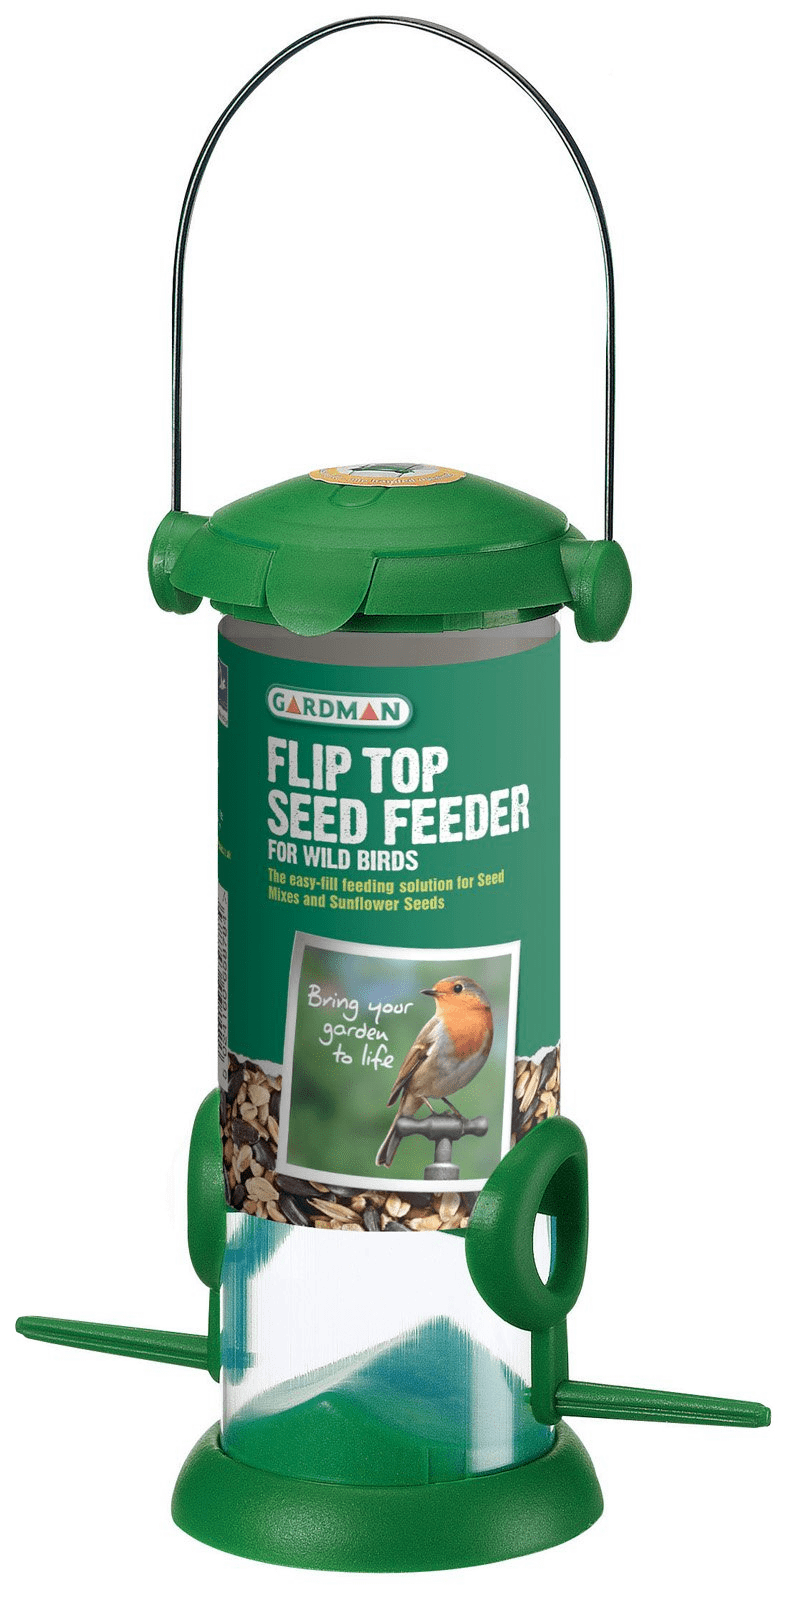 Gardman Flip Top Seed Feeder For Wild Birds